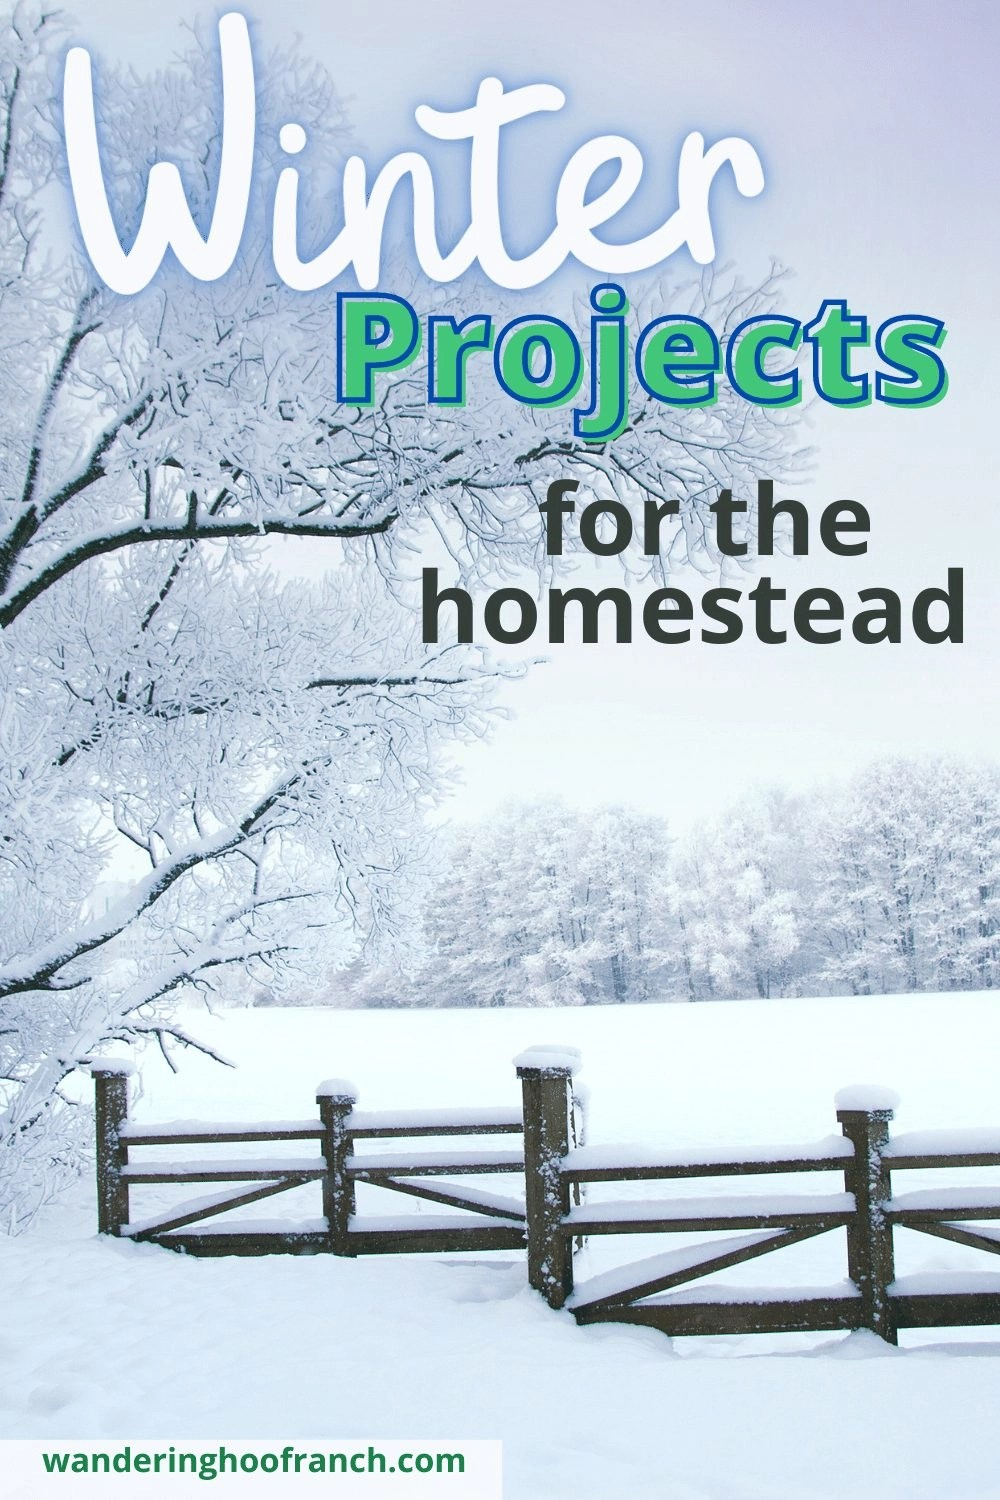 winter projects for the homestead. Snowy field with fence and tree